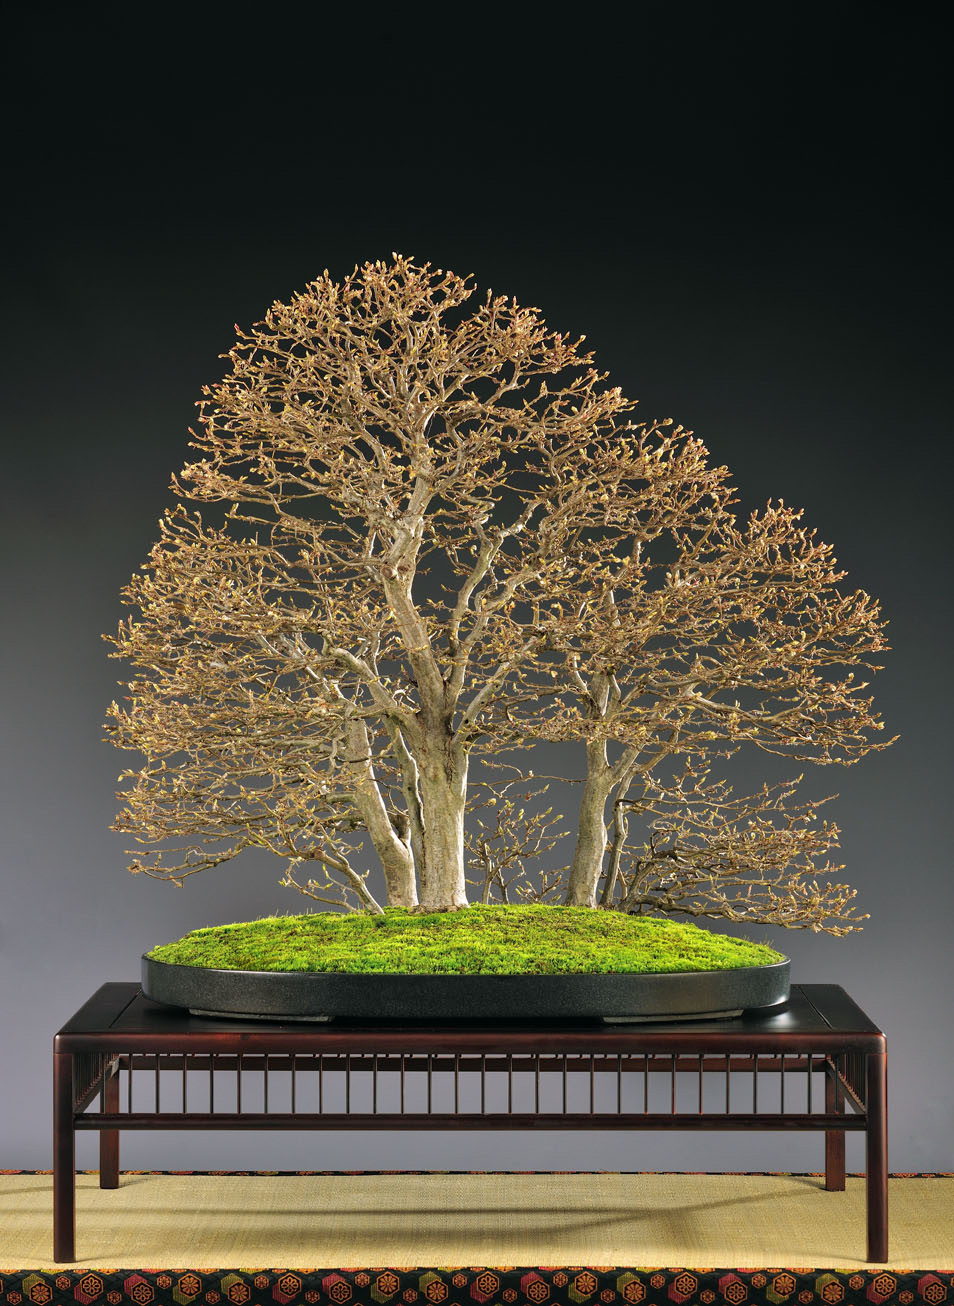 BONSAI ART AWARD 2018 Noelanders Trophy Jürg Stäheli